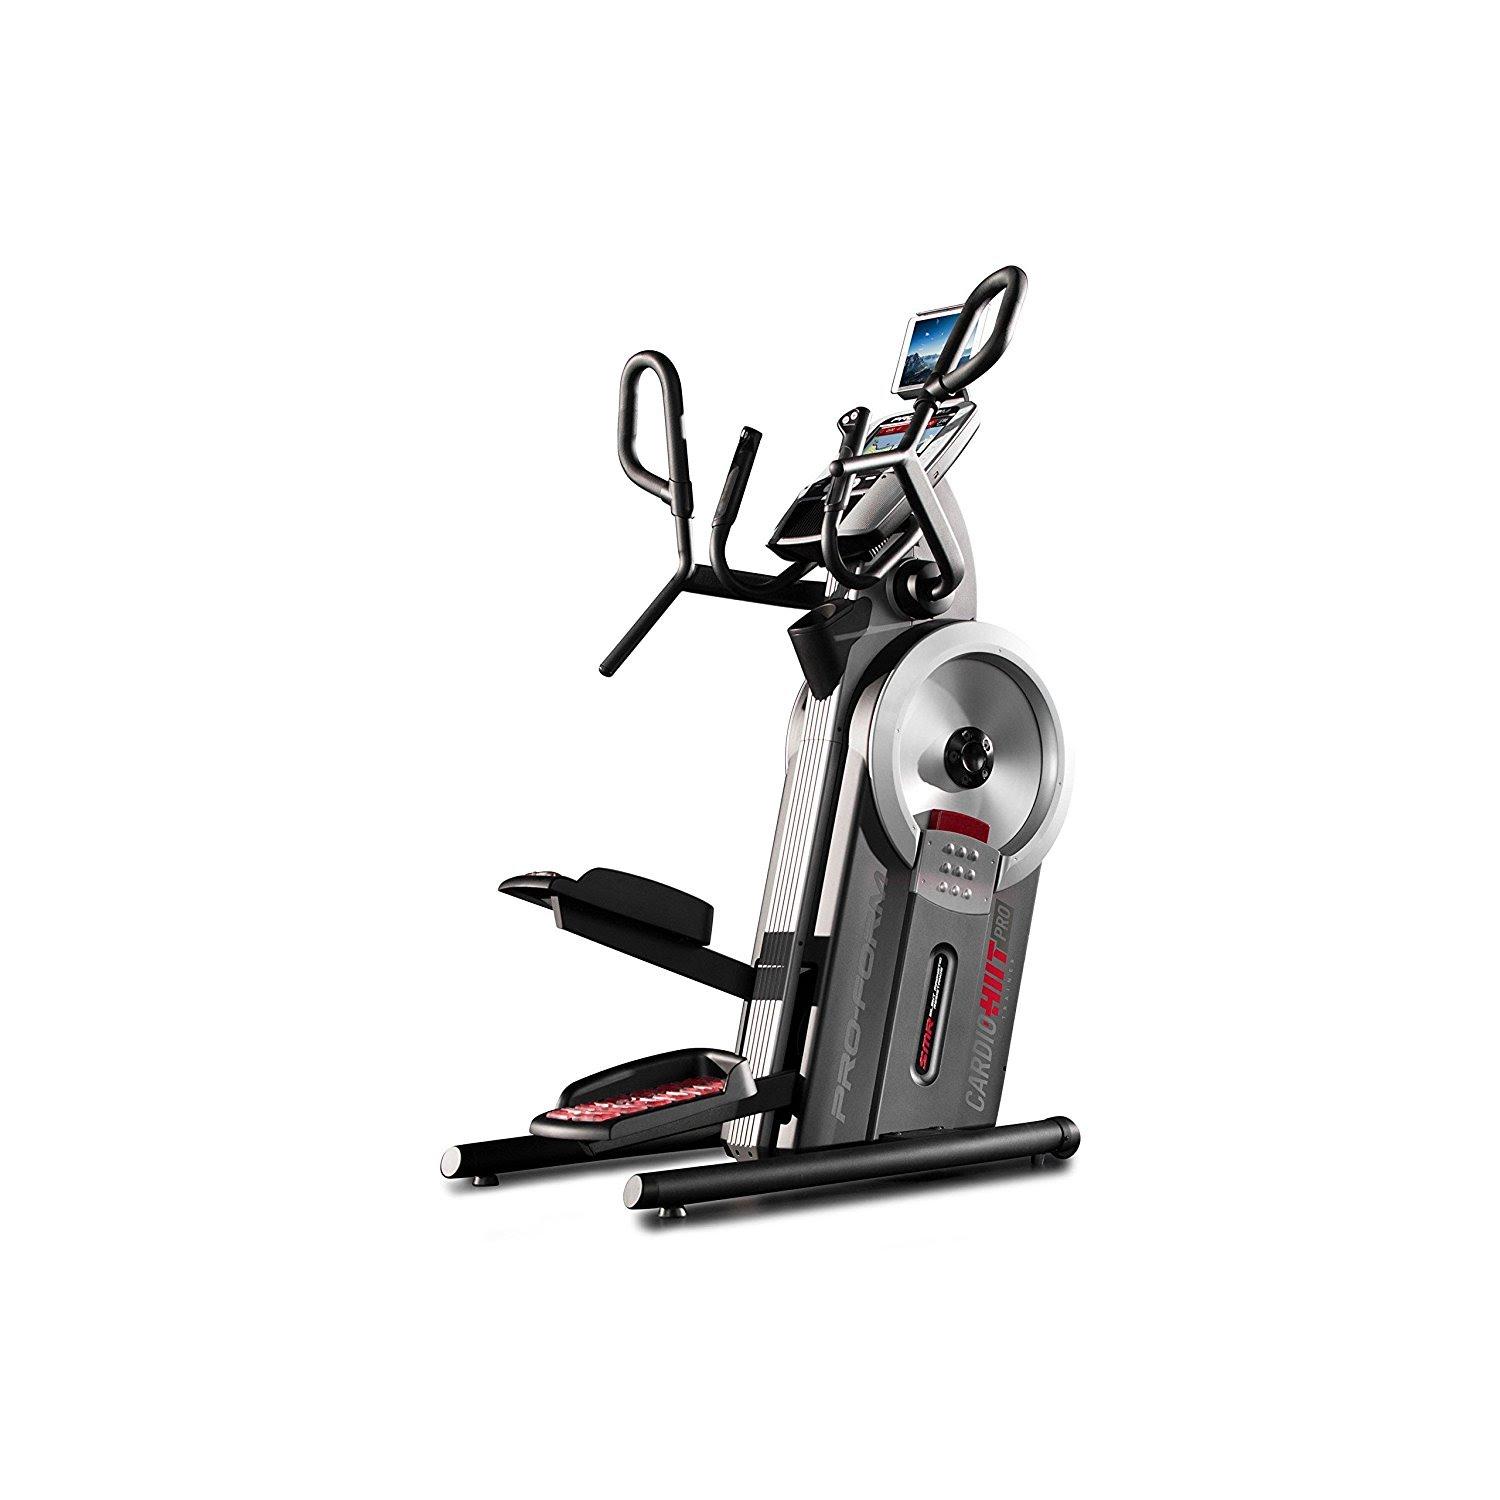 Health And Fitness Den Proform Cardio Hiit Trainer Pro Review